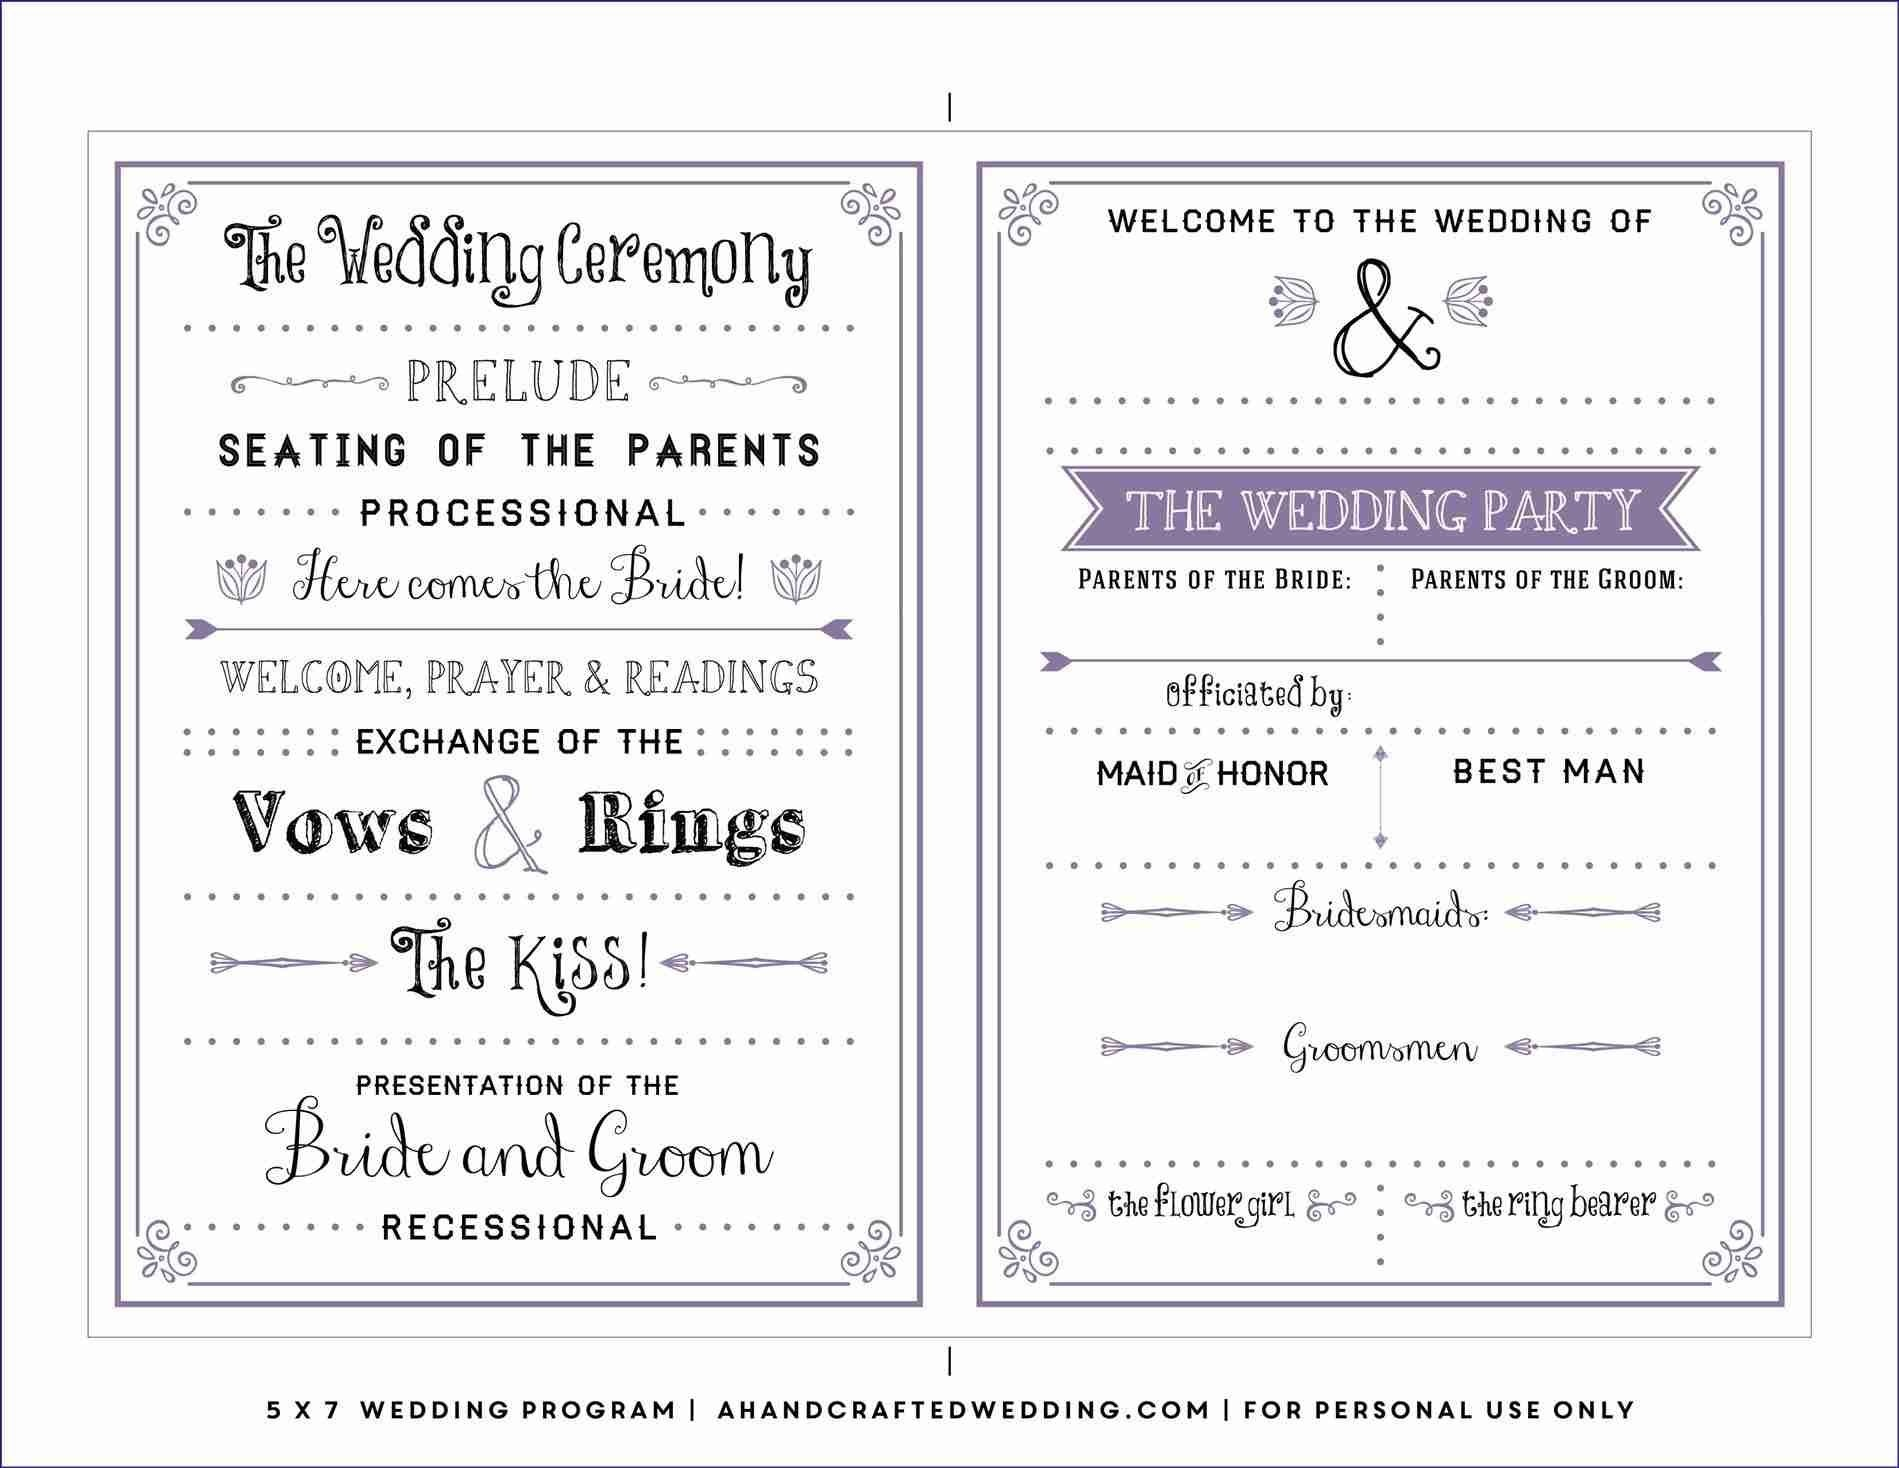 Free Downloadable Wedding Program Template That Can Be Printed - Free Printable Wedding Program Templates